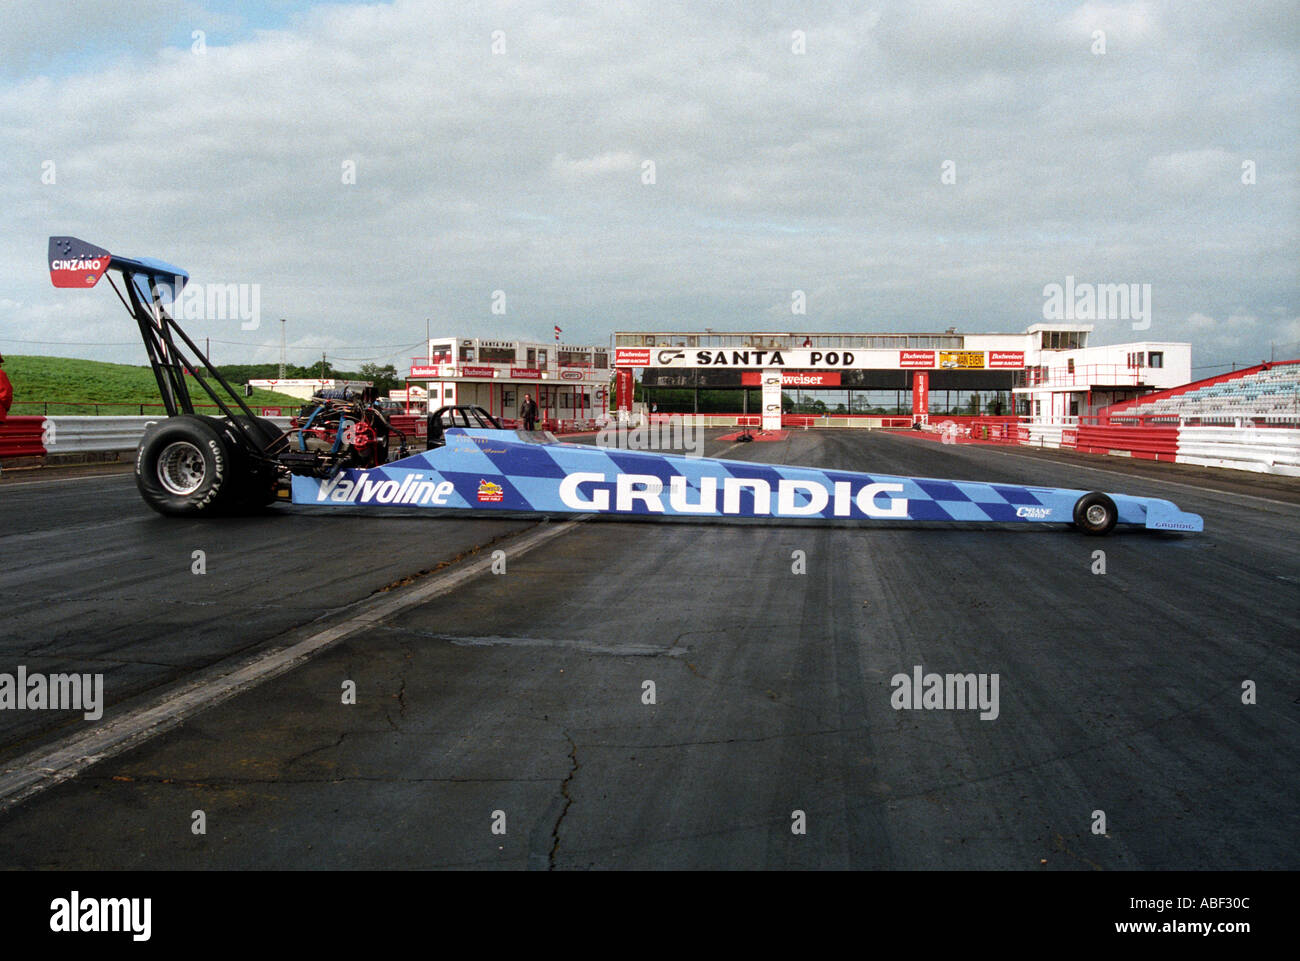 Rail Dragster Stock Photos & Rail Dragster Stock Images - Alamy